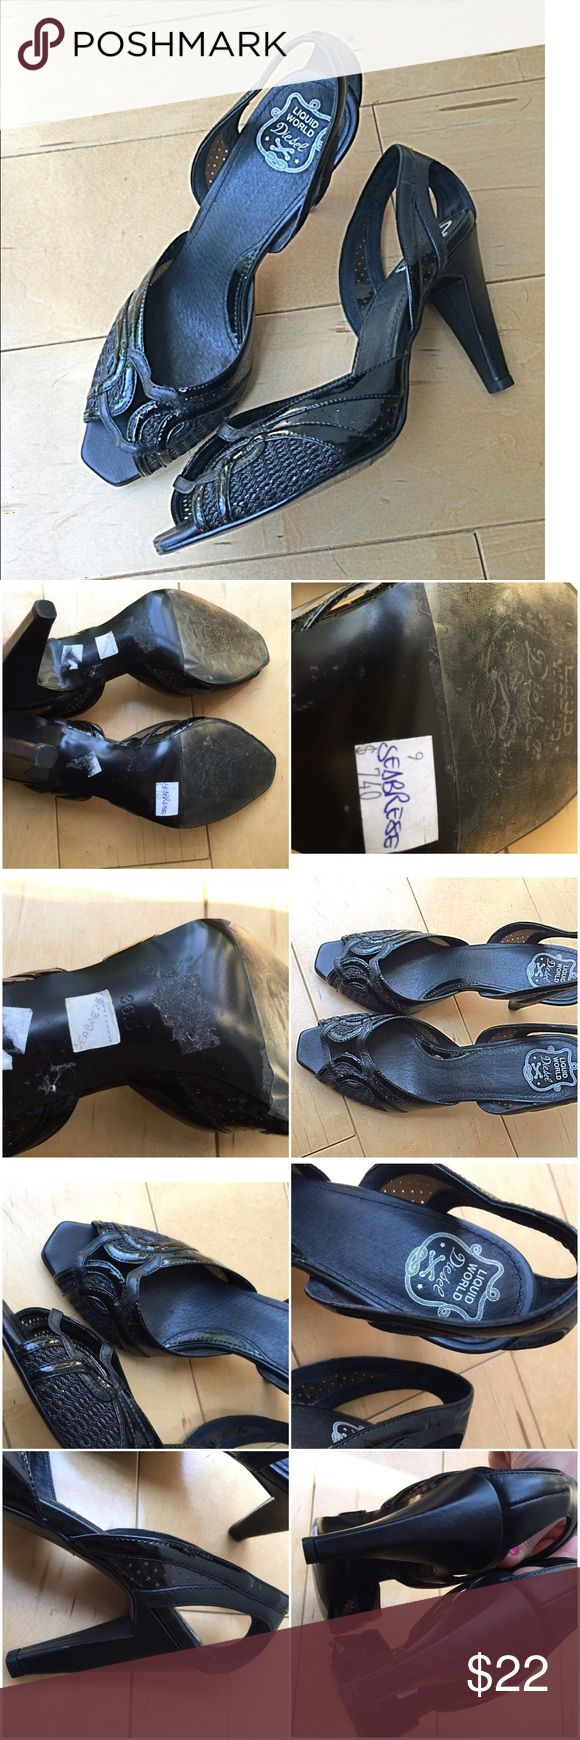 Diesel heels black Diesel black heels. Never worn, protective stickers and original price still attached. Diesel Shoes Heels